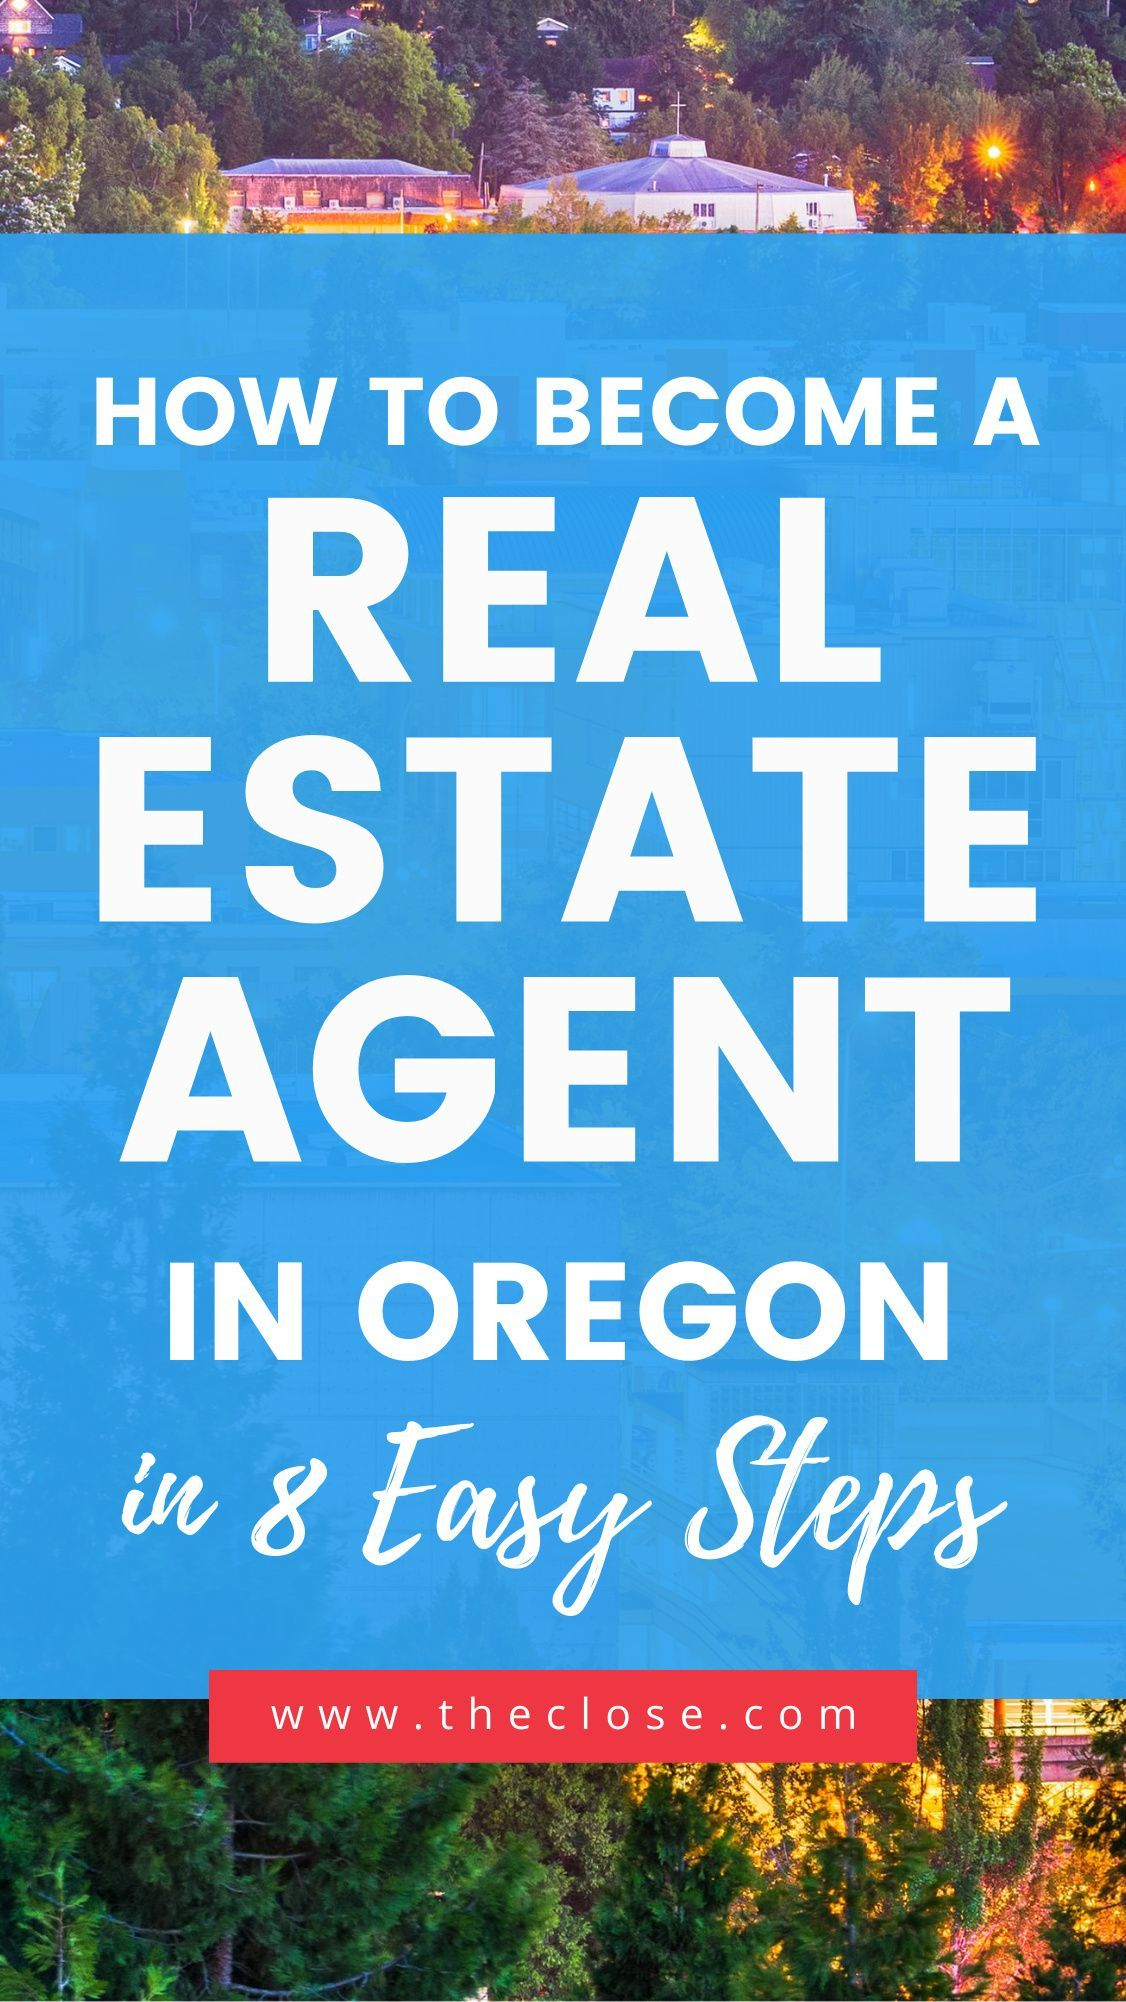 How To Get An Oregon Real Estate License In 8 Easy Steps The Close Real Estate Classes Real Estate License Real Estate Exam